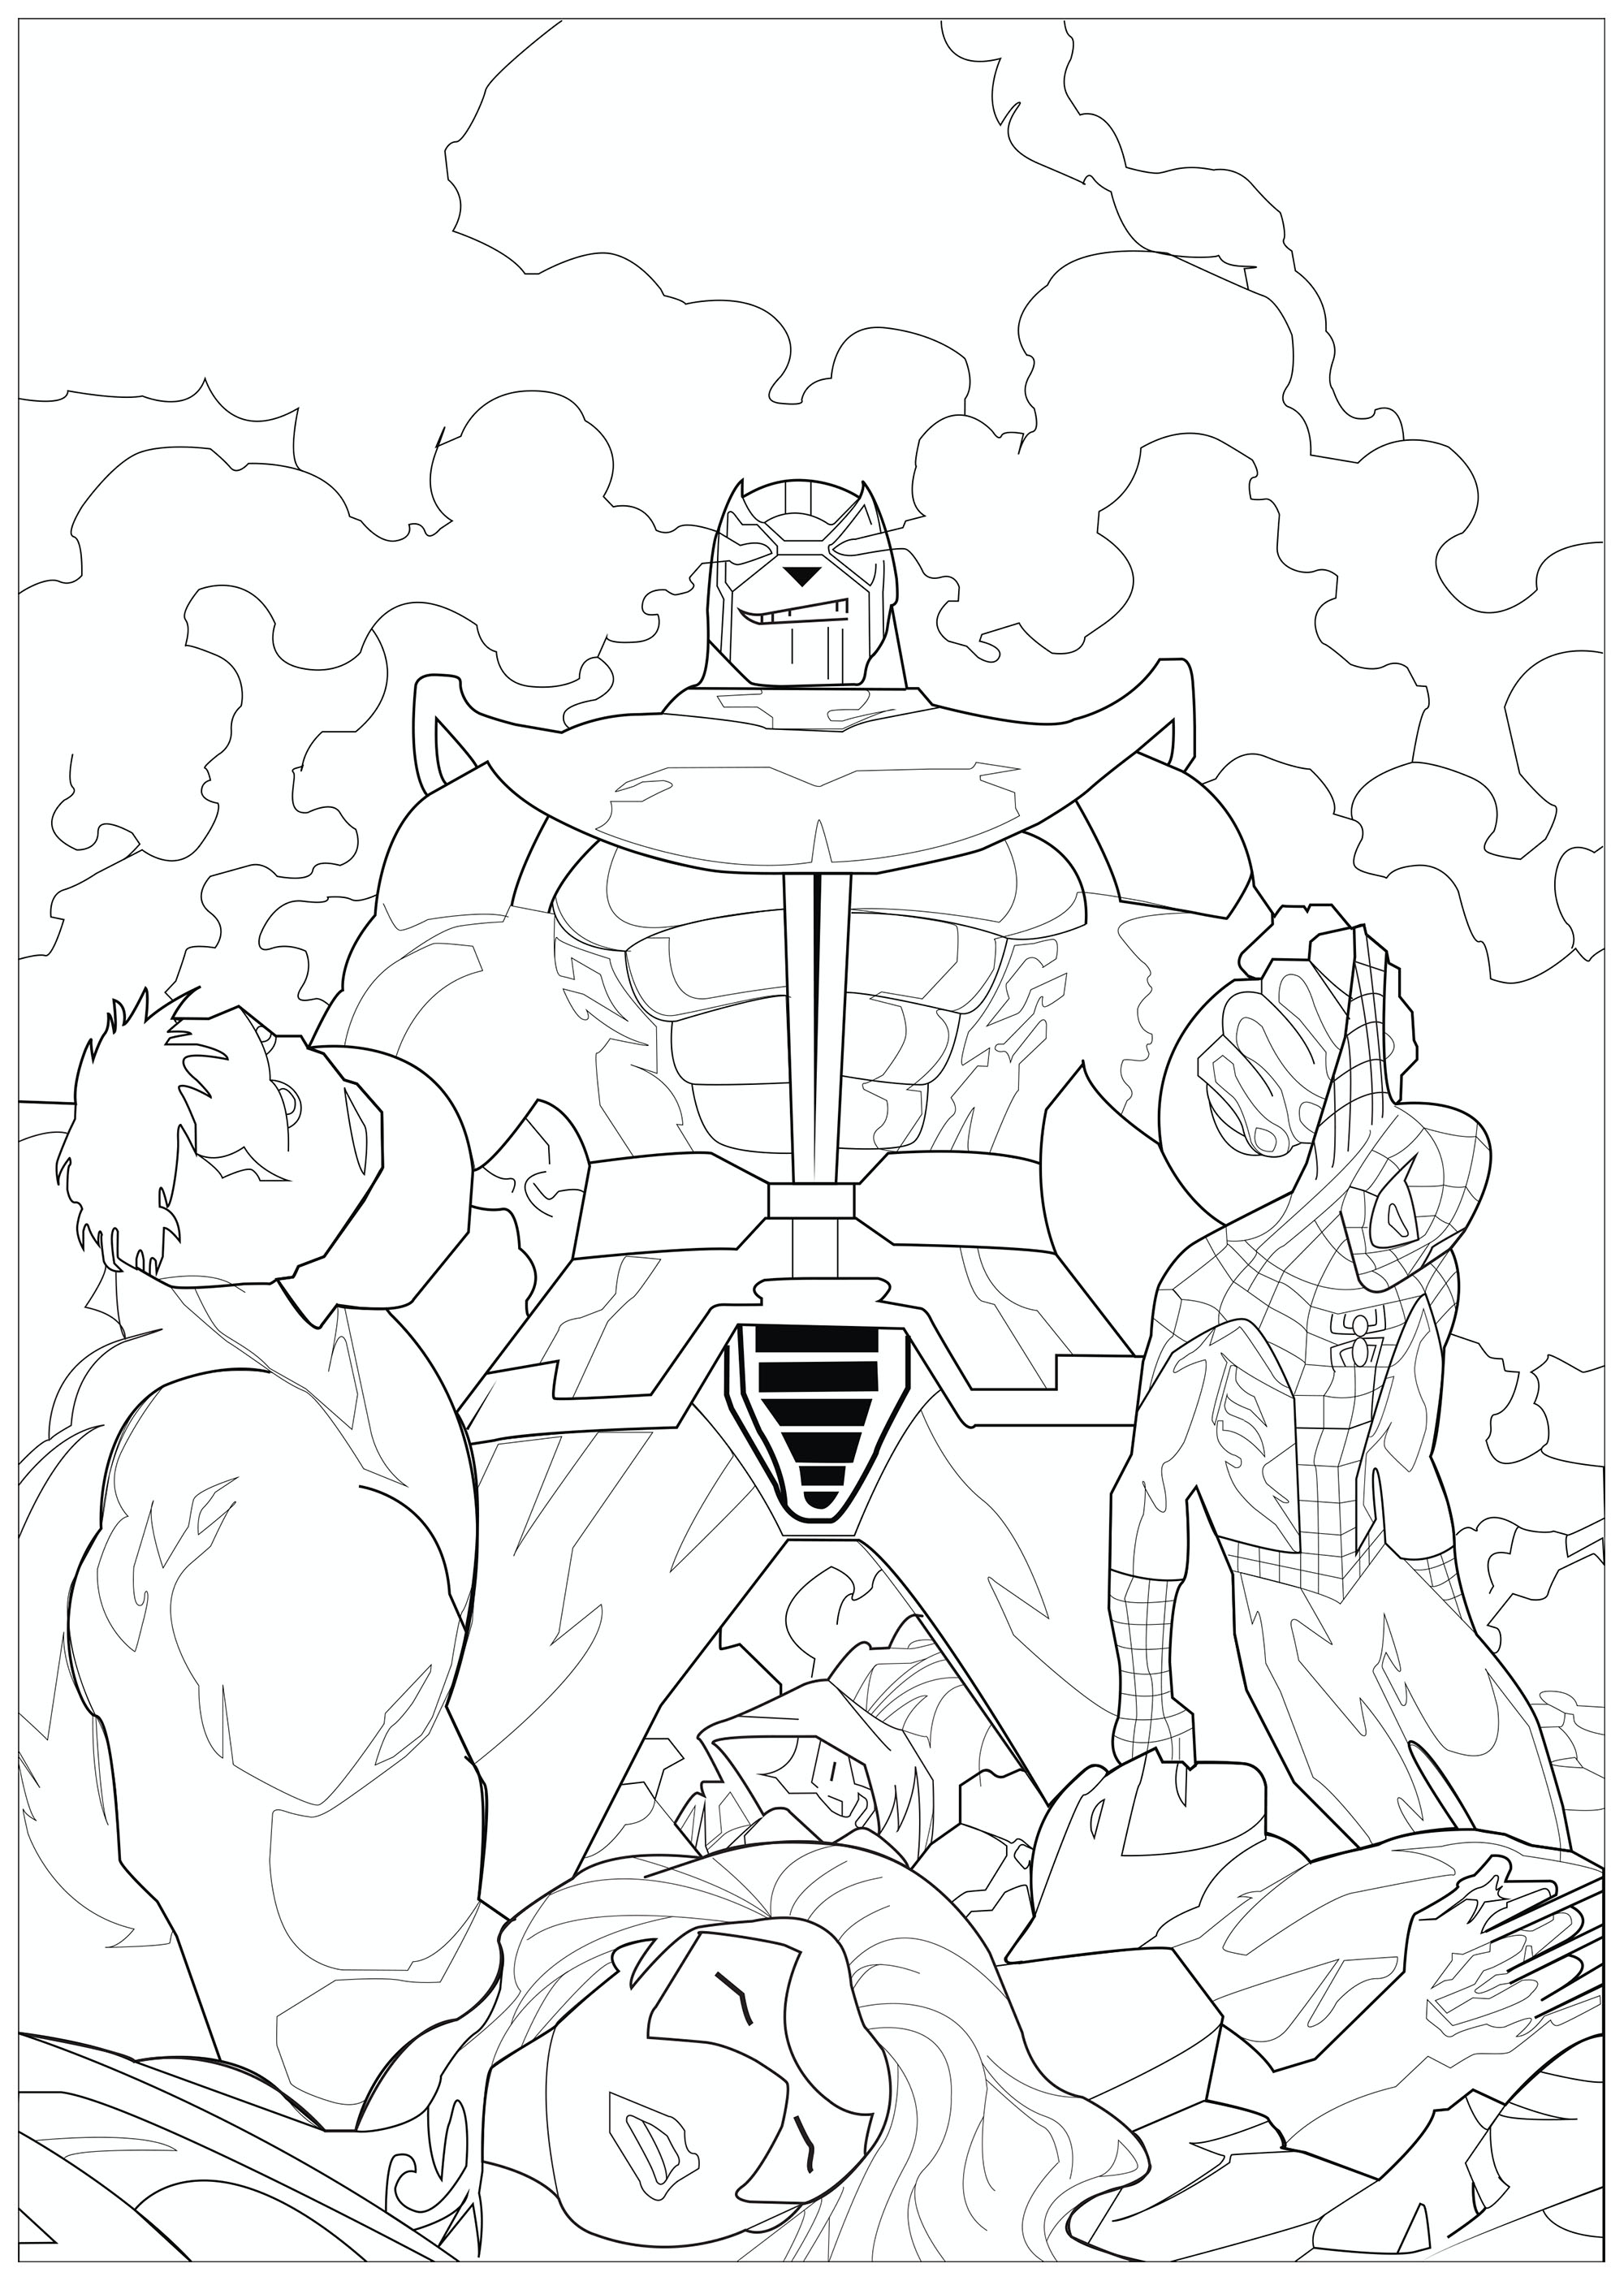 Free Coloring Pages Download Books And Ics For Adults Of Marvel Comics